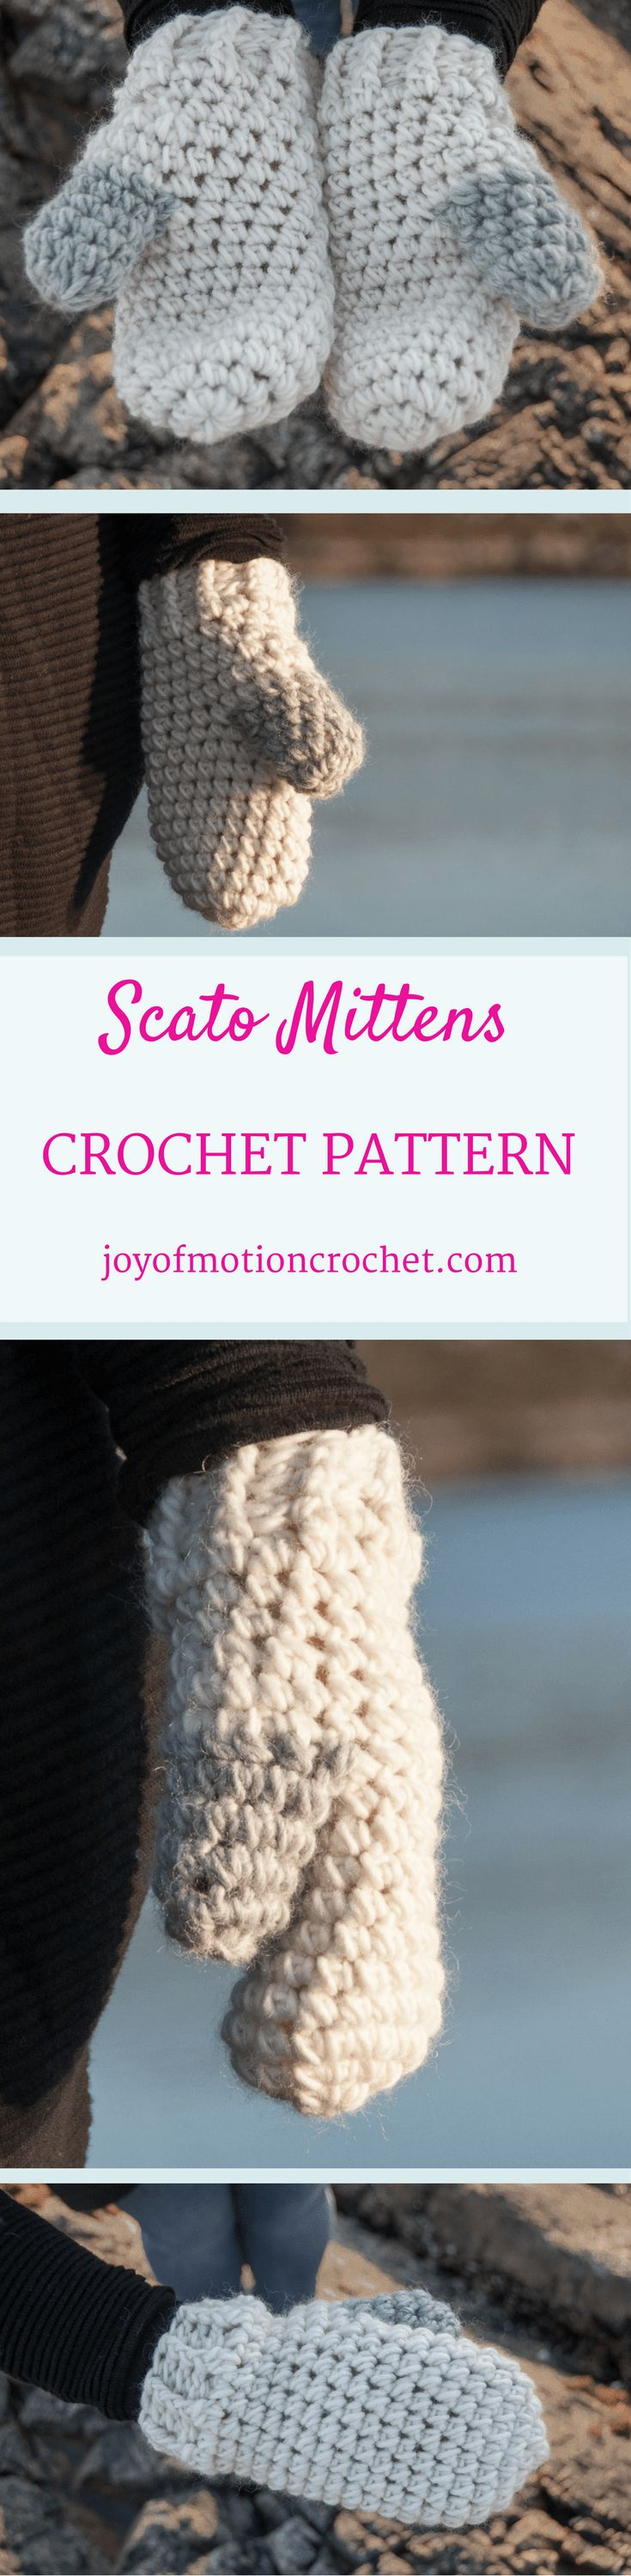 Scato Mittens Crochet pattern. mittens crochet pattern design. Intermediate crochet pattern. Mittens crochet pattern. Crochet pattern for mittens. Crochet pattern for her. Gift crochet pattern. Intermediate mittens crochet pattern. Lovely crochet mittens. Click to learn more or pin it for later. via @http://pinterest.com/joyofmotion/